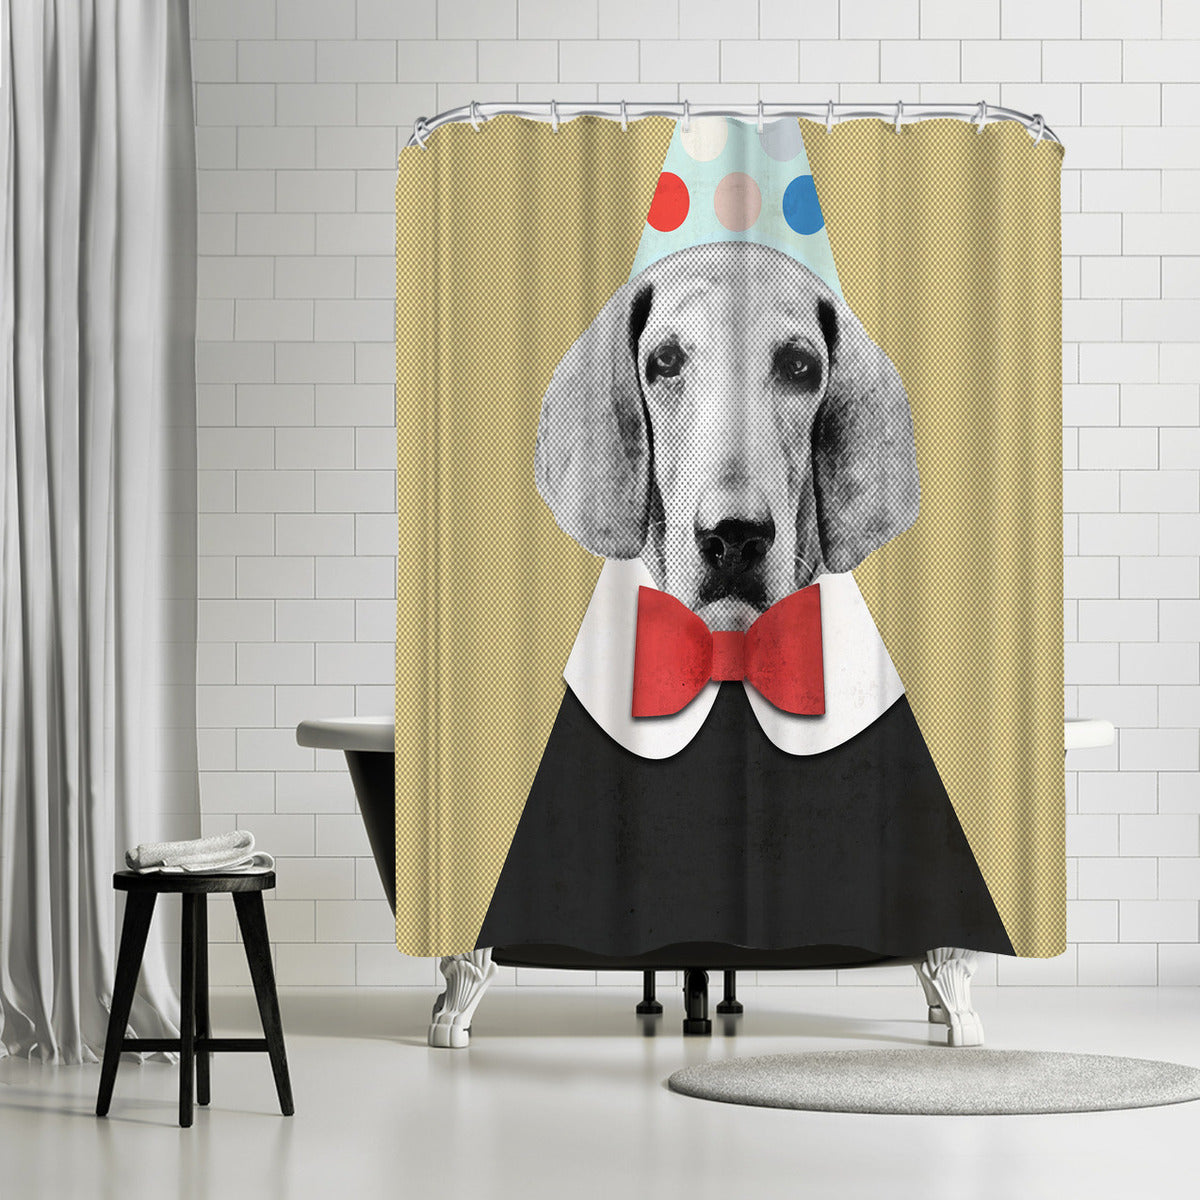 Doggy Pooh The Clown by Emanuela Carratoni Shower Curtain - Shower Curtain - Americanflat